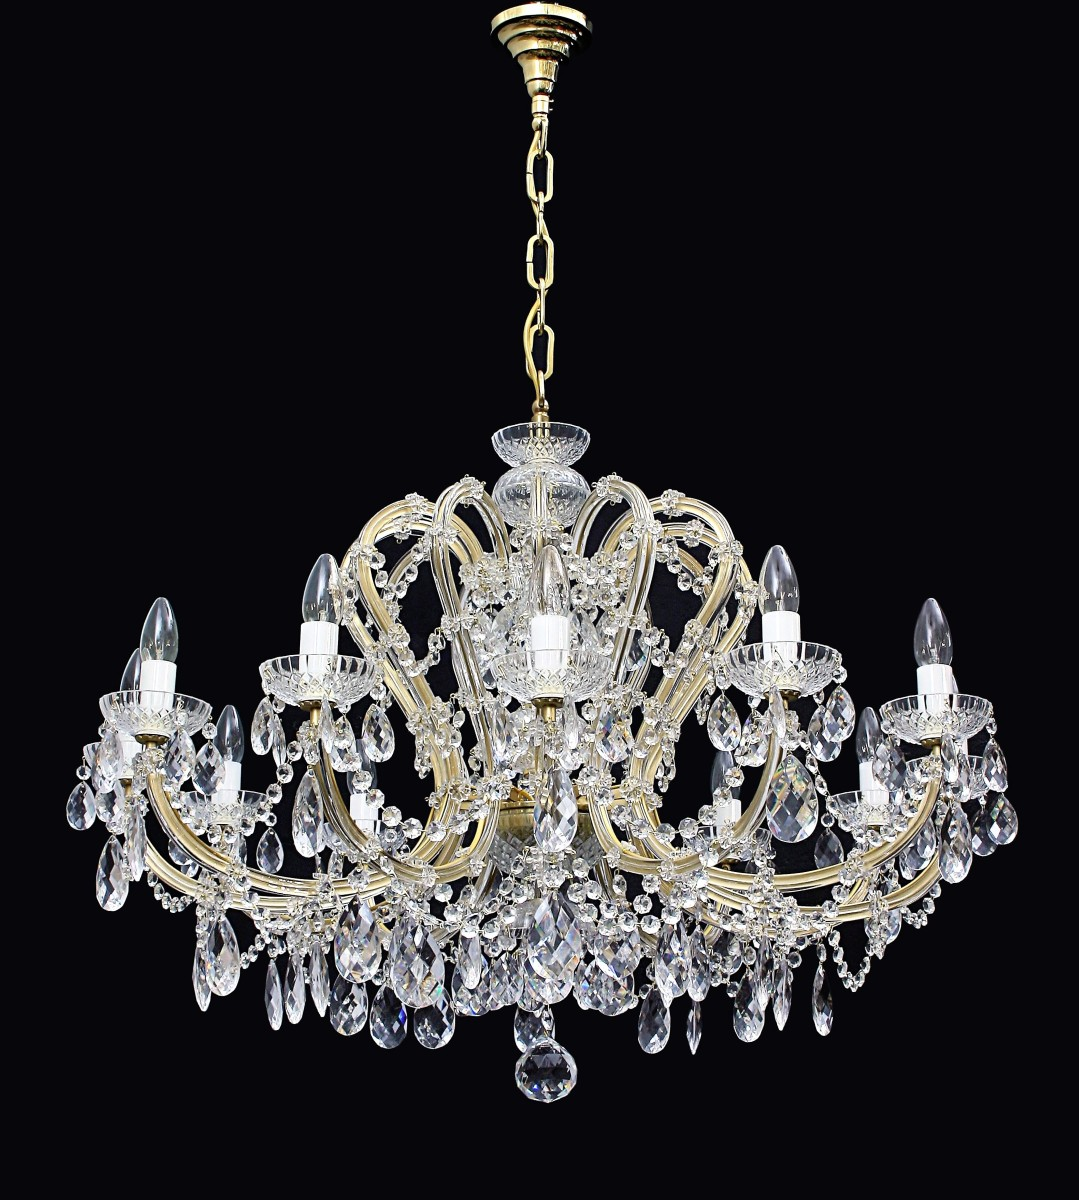 12 Flames Inexpensive Czech Maria Theresa Crystal Chandelier With Crystal Almonds Pressed Glass Bohemian Glass